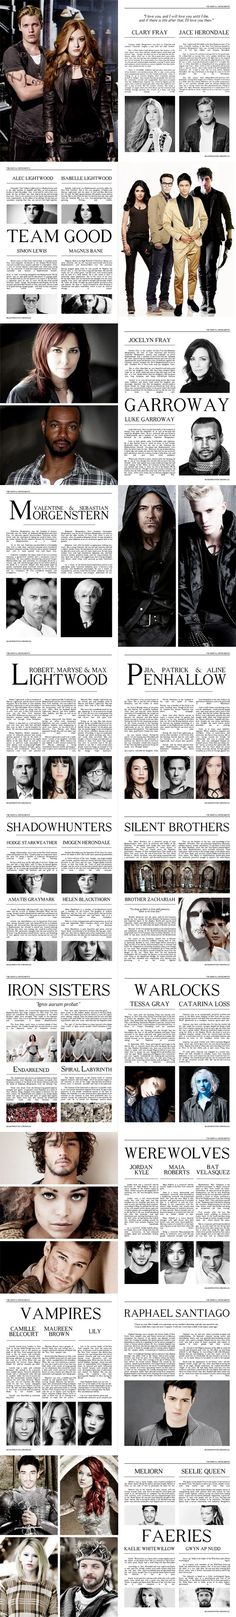 The Mortal Instruments Fanart Magazine<<<< some of the character choices i can agree with others I'm like WHAAA!!!